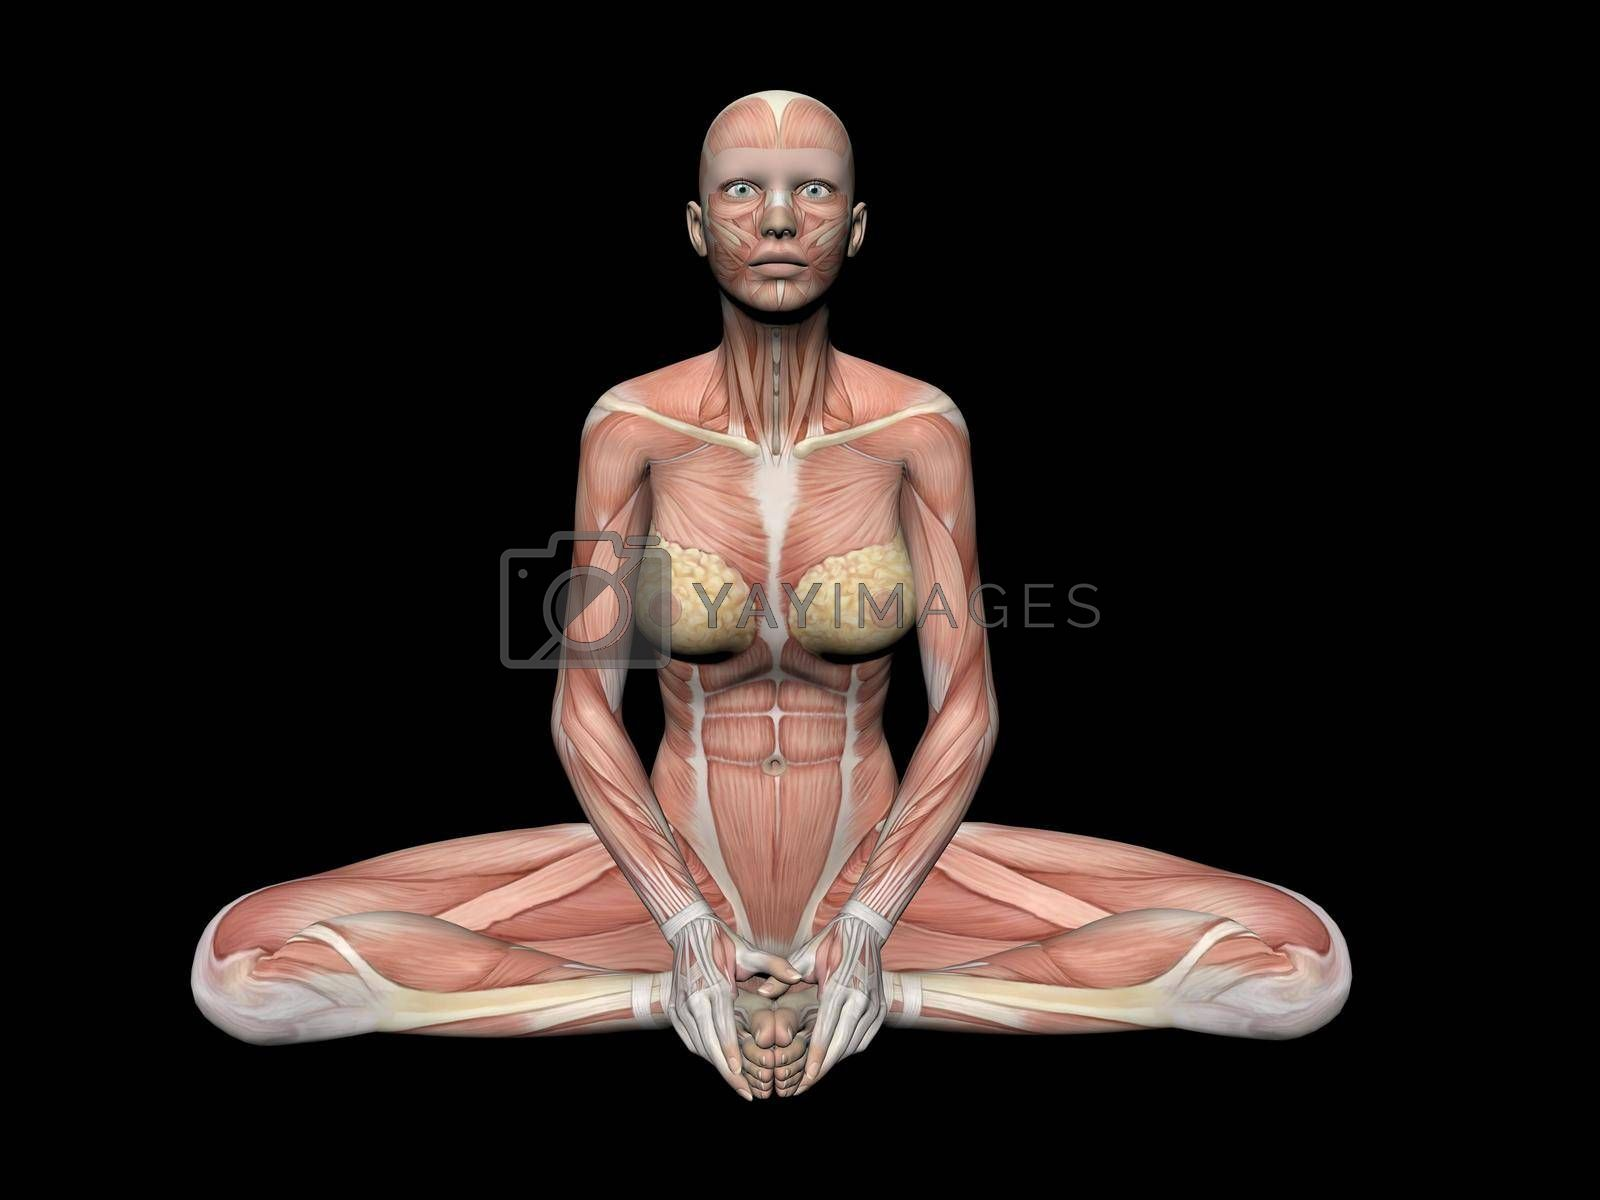 Royalty free image of woman anatomy figure - 3d render by mariephotos